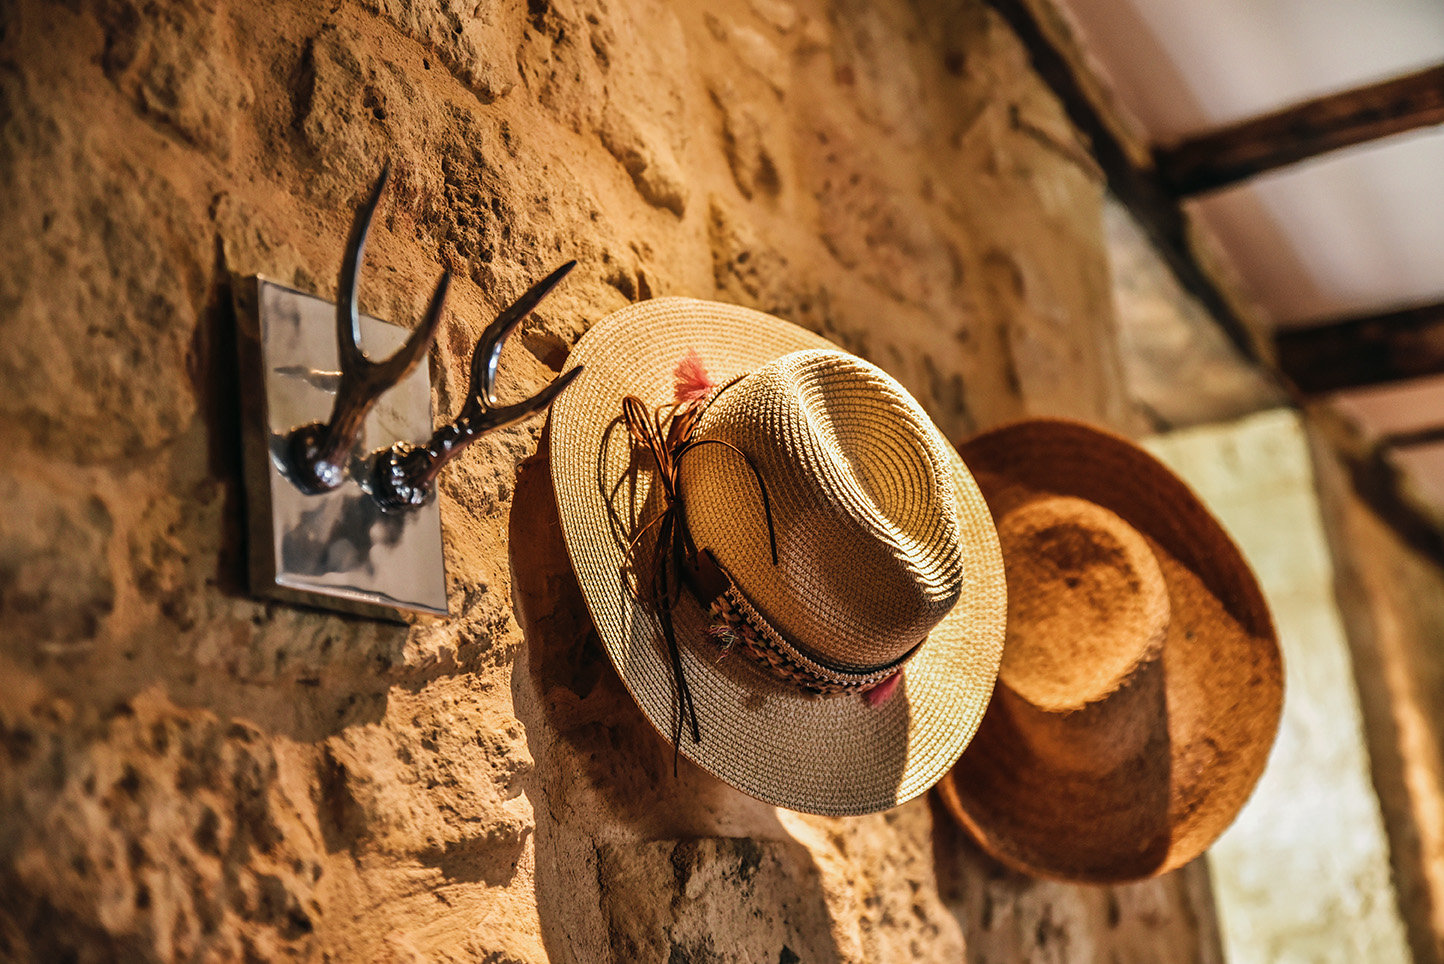 Summer straw hats hanging on silver-coloured antler hooks made by Pols Potten on a stone wall in the kitchen of Le Mas, a holiday rental in the Dordogne